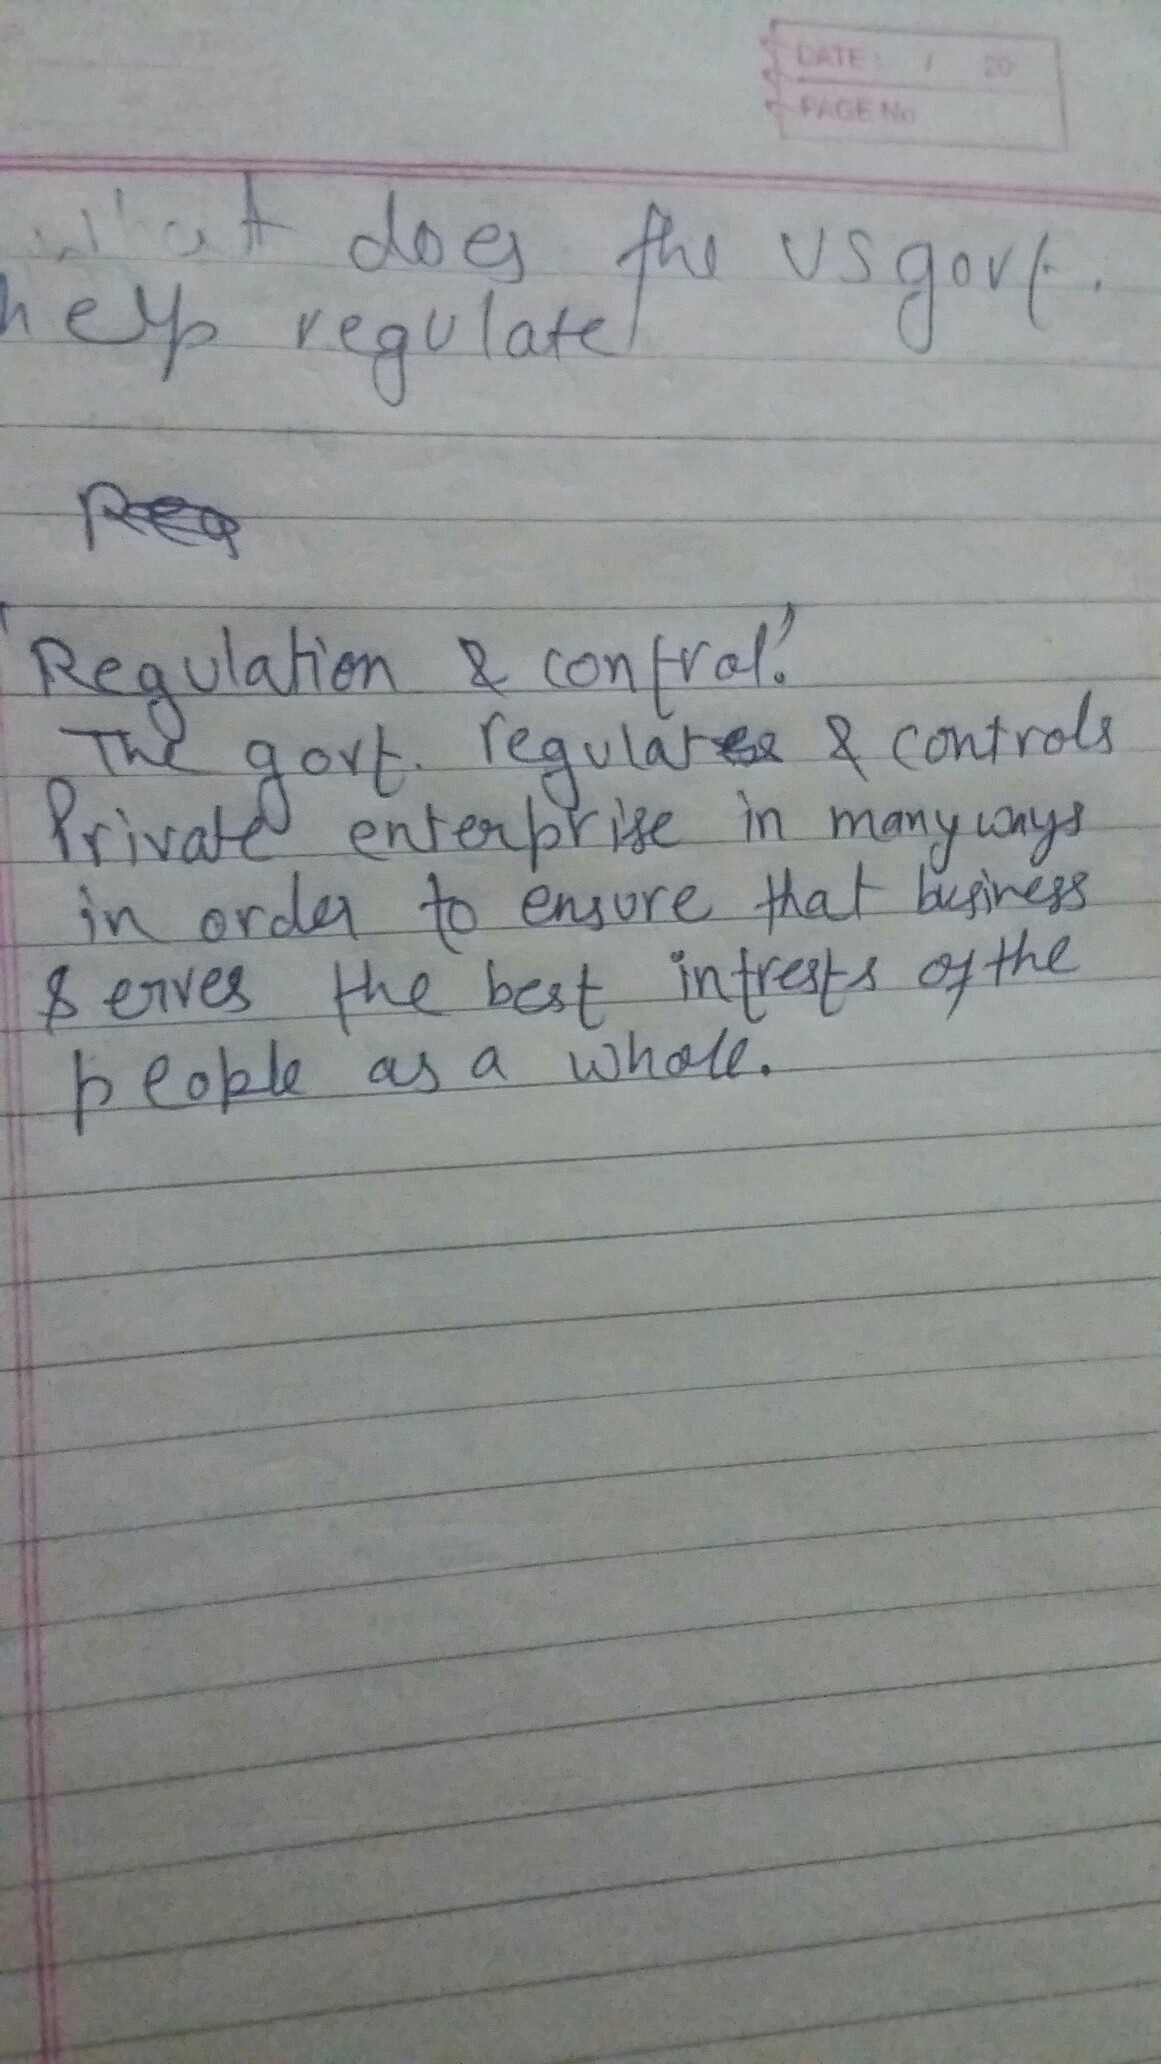 what does the us government help regulate - brainly.in